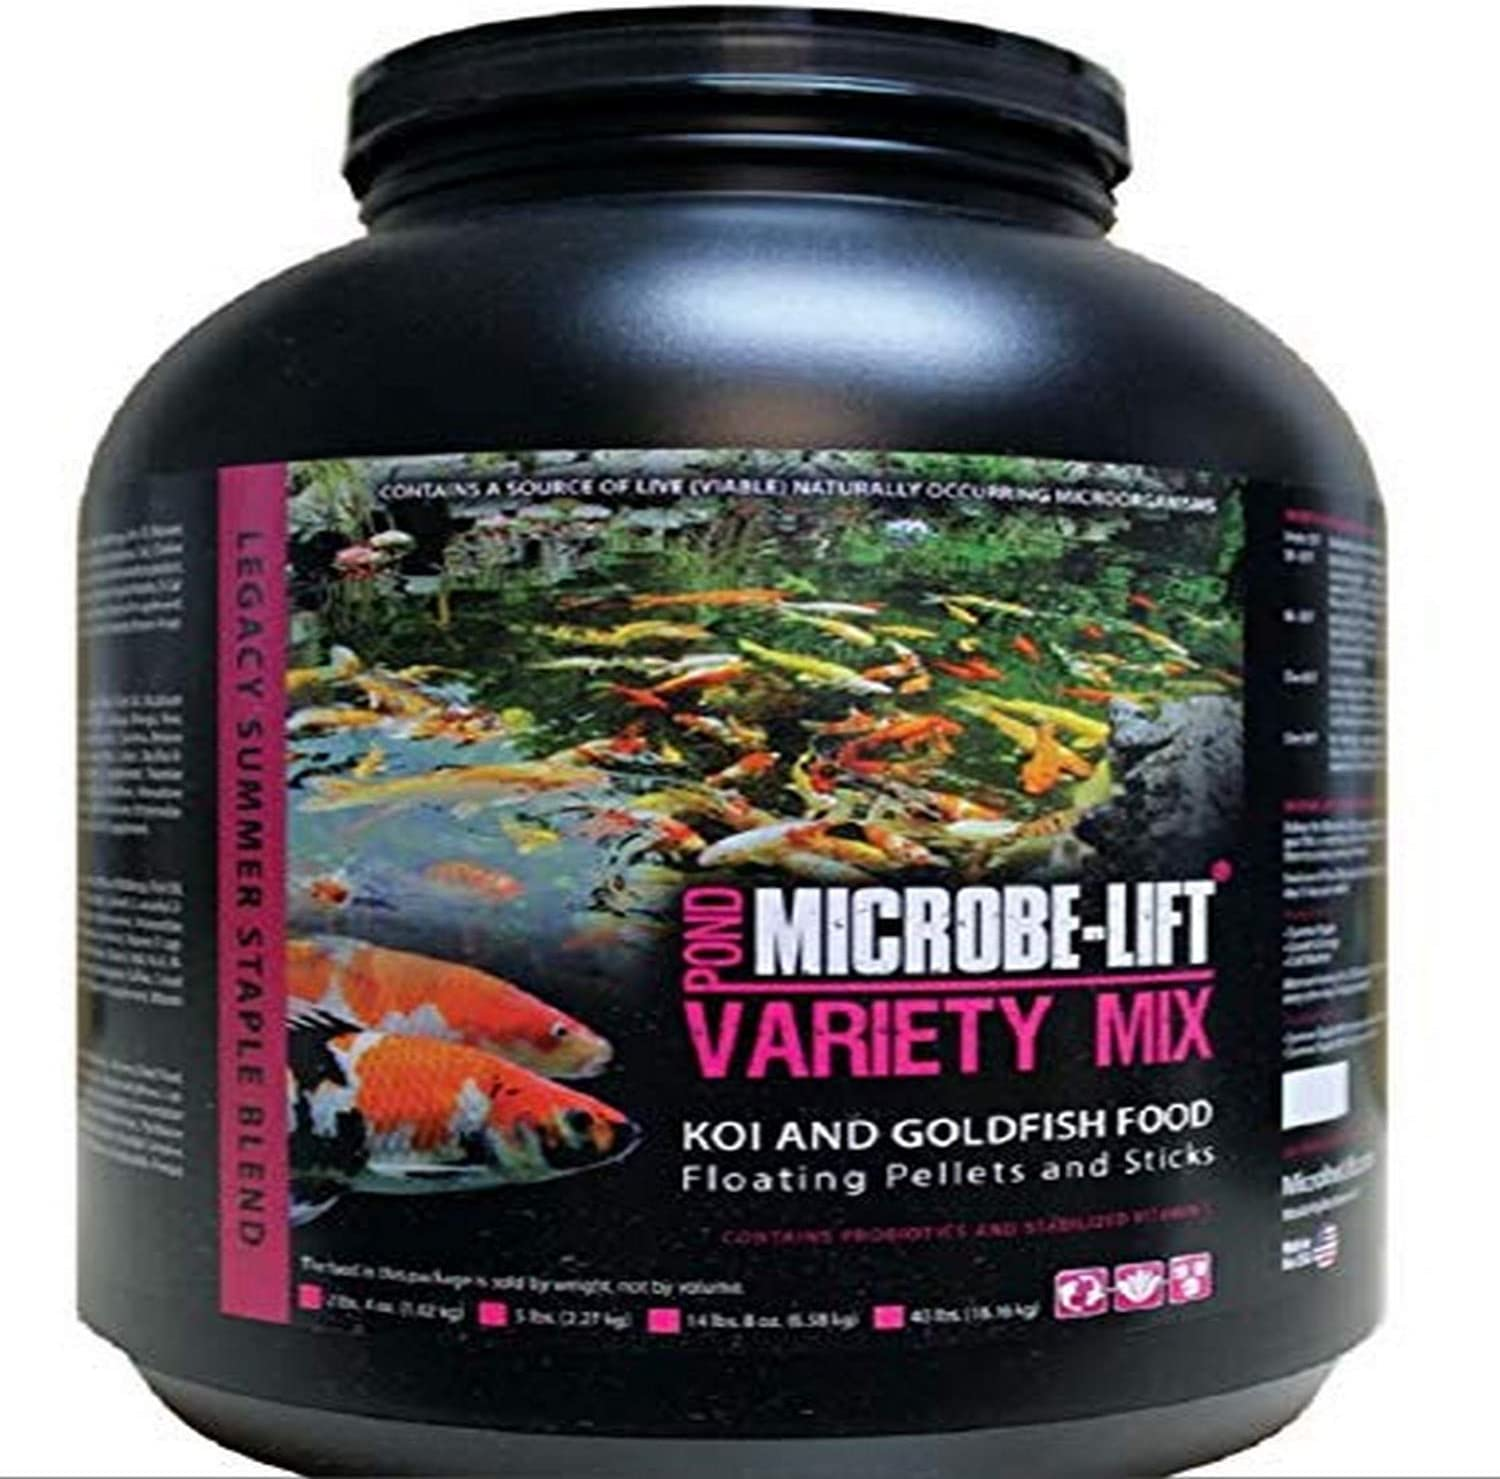 Ecological Labs Microbe-Lift Legacy Variety Mix Pond Treatment, 5 lb